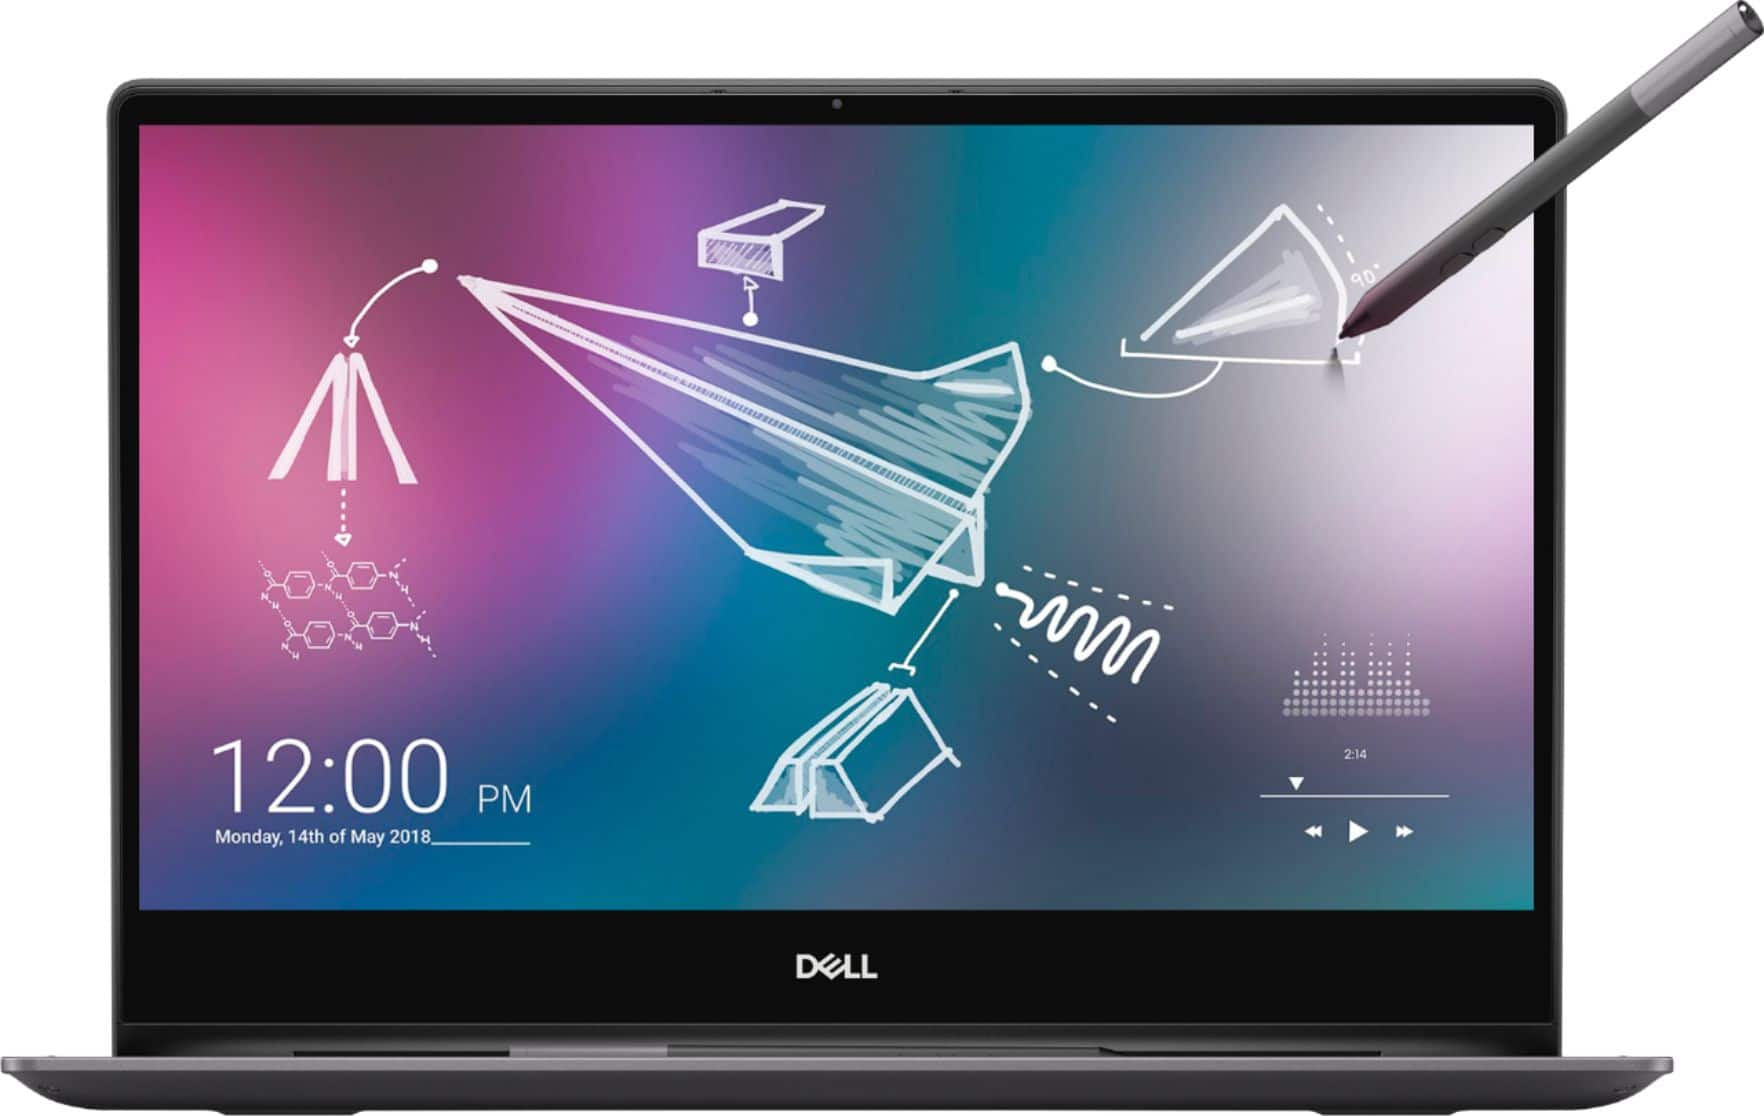 """Dell Inspiron 2-in-1 13.3"""" 4K Ultra HD Touch-Screen Laptop Intel Core i7 16GB Memory 512GB SSD + Optane Black I7390-7100BLK-PUS - Best Buy $979"""